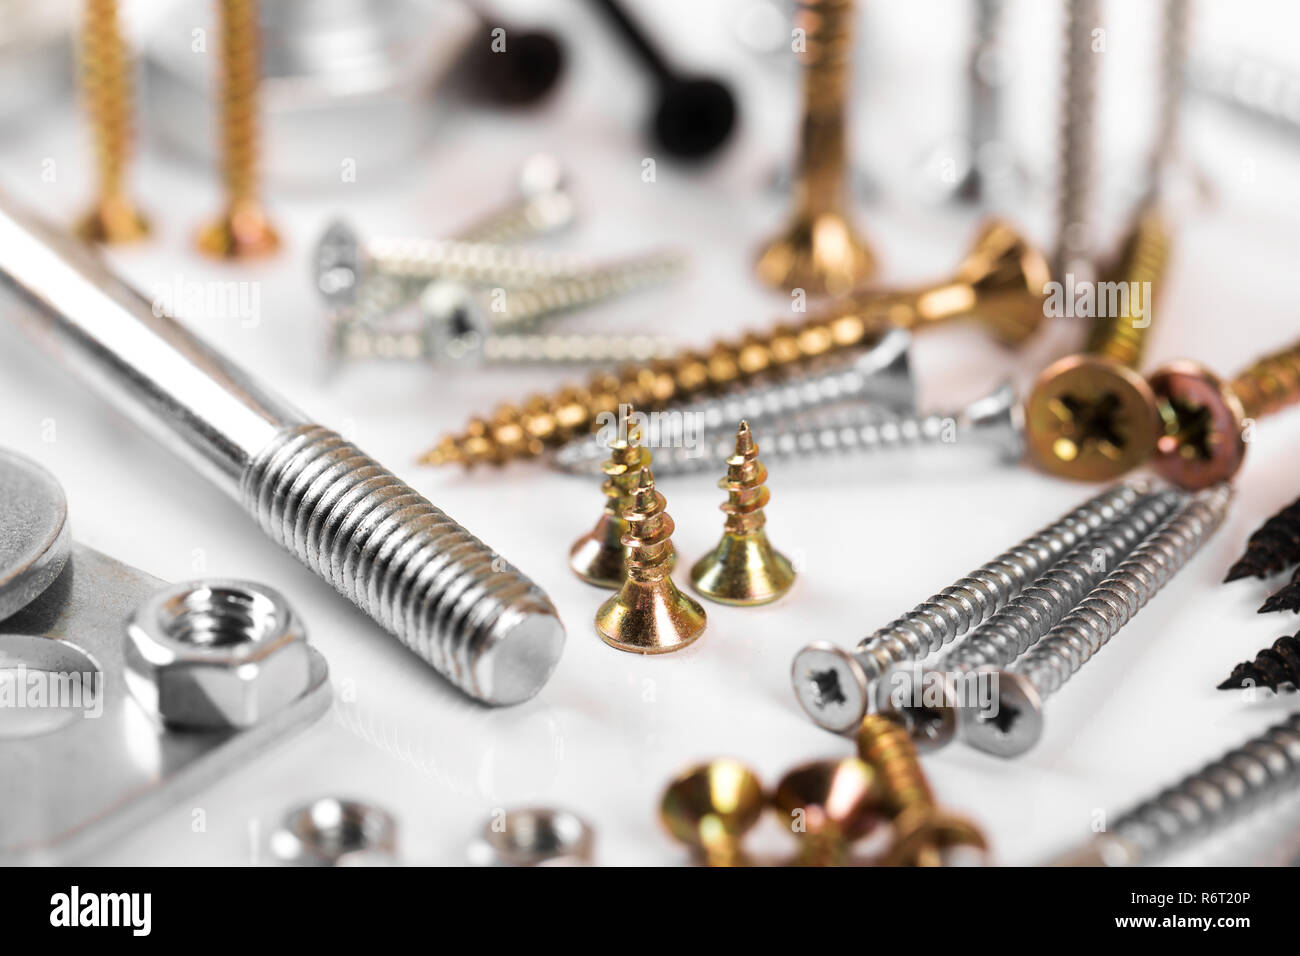 screws closeup - Stock Image